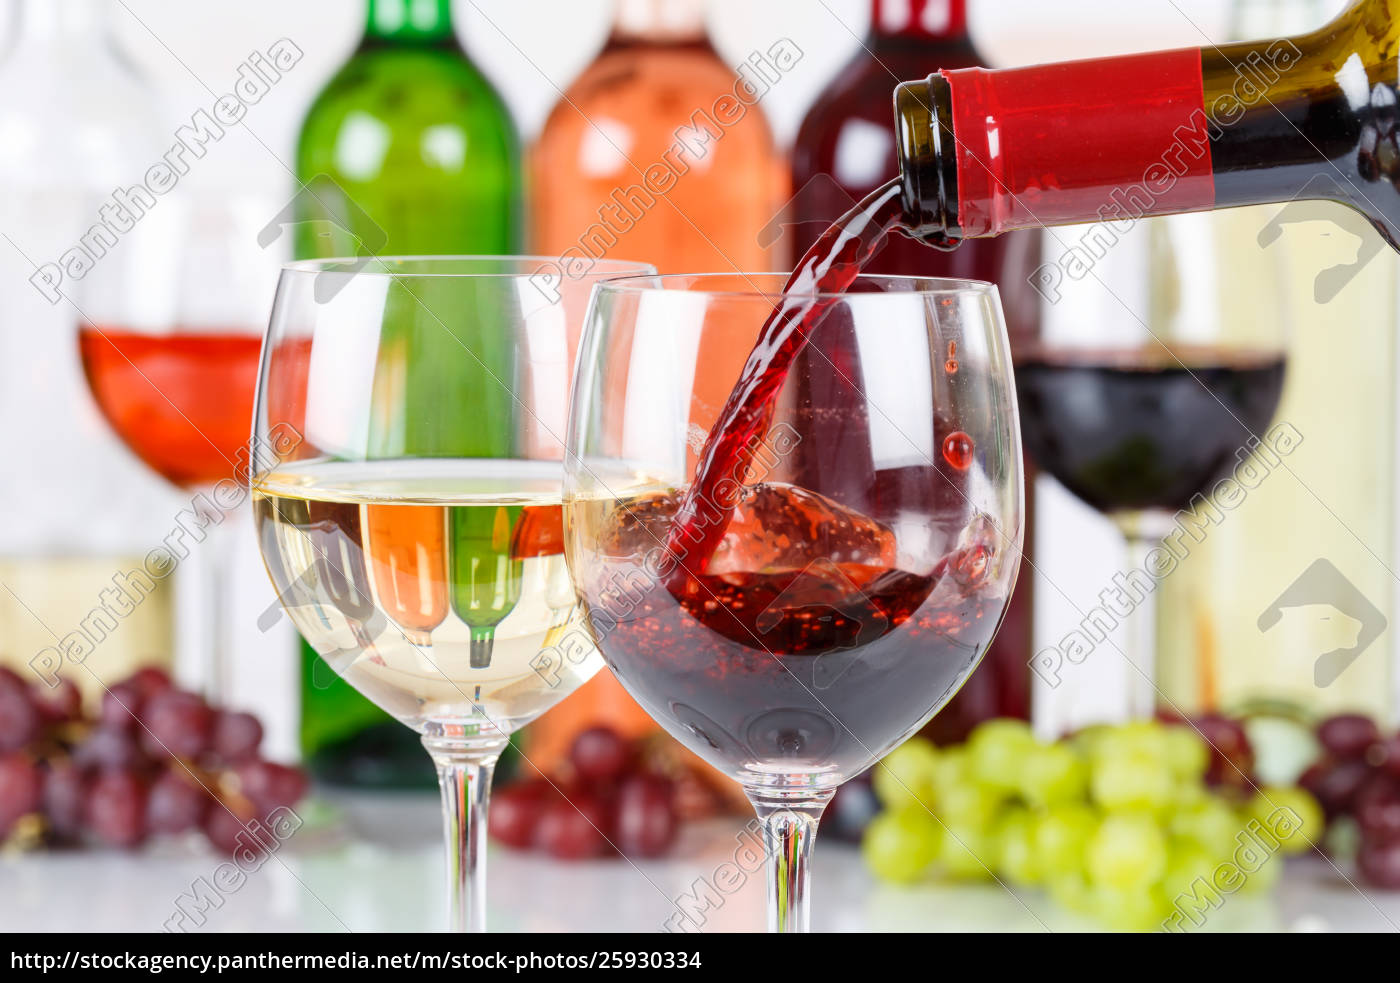 wine, pouring, glass, bottle, red, pour - 25930334